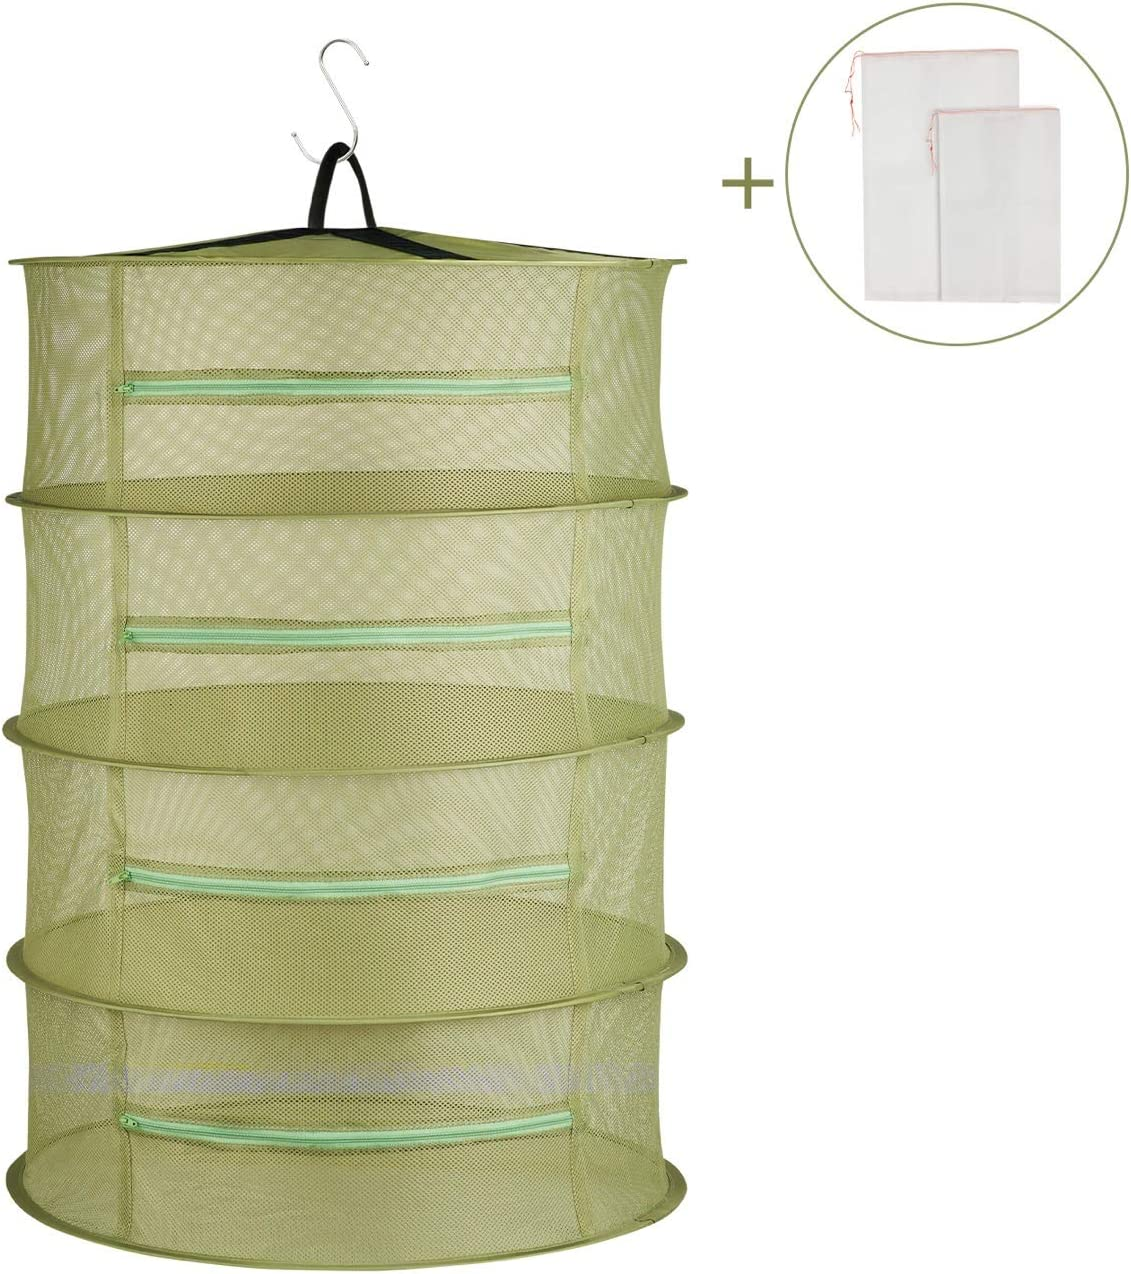 JMLior Herb Drying Rack Hanging Collapsible Drying Mesh 2ft 4 Layer Dryer Basket Net for Plant Hydroponics Flowers Vegetables Olive Green and Bonus Mesh Storage Bag